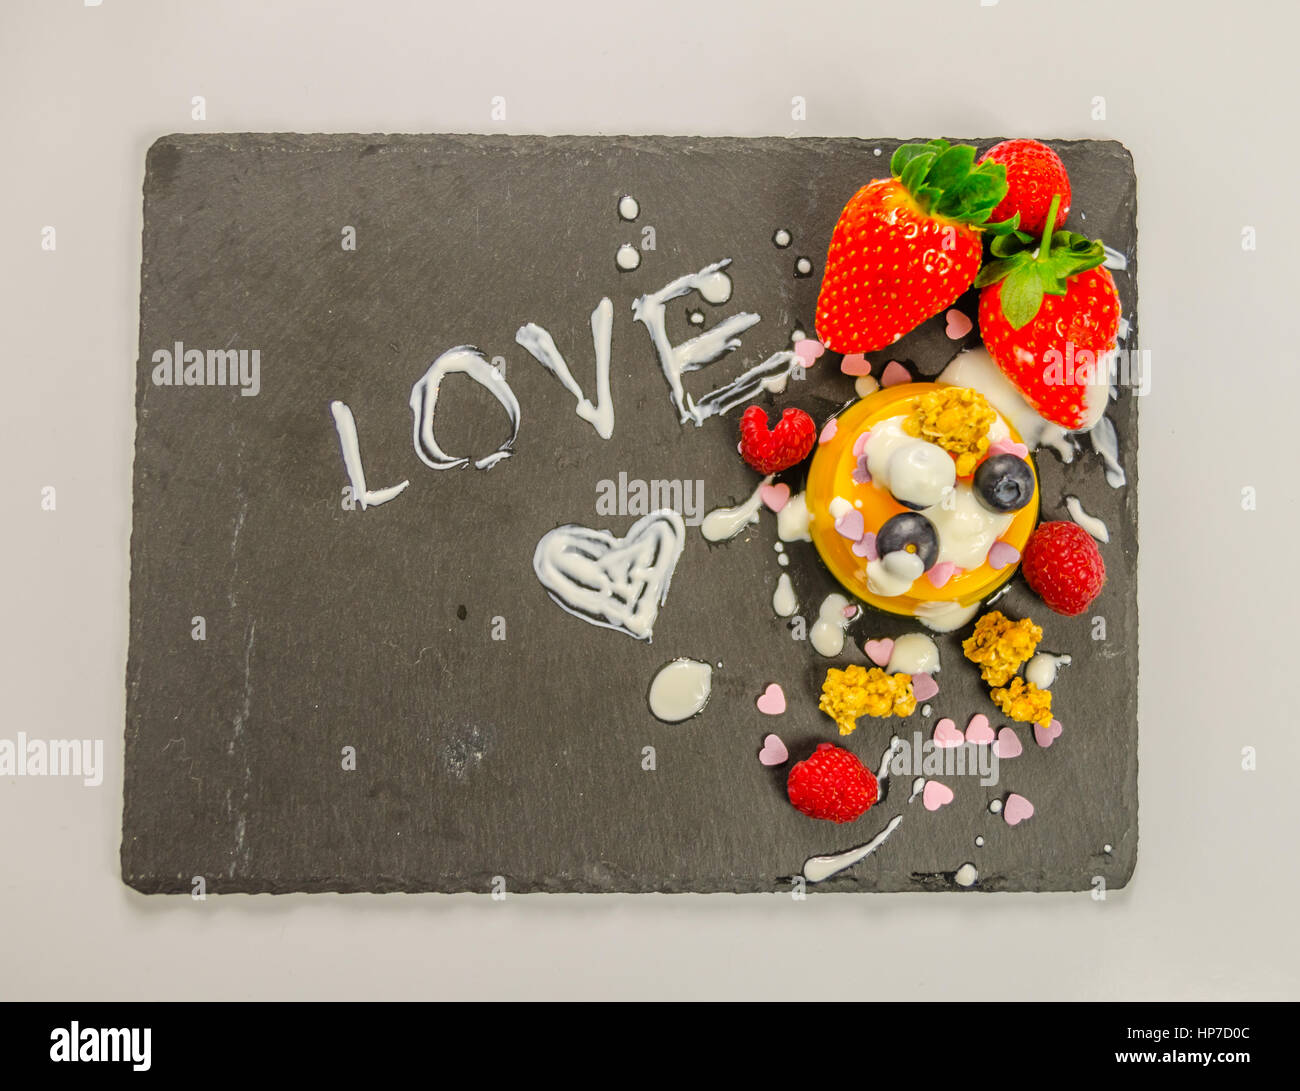 dessert with fruit on a black stone plate with an inscription love